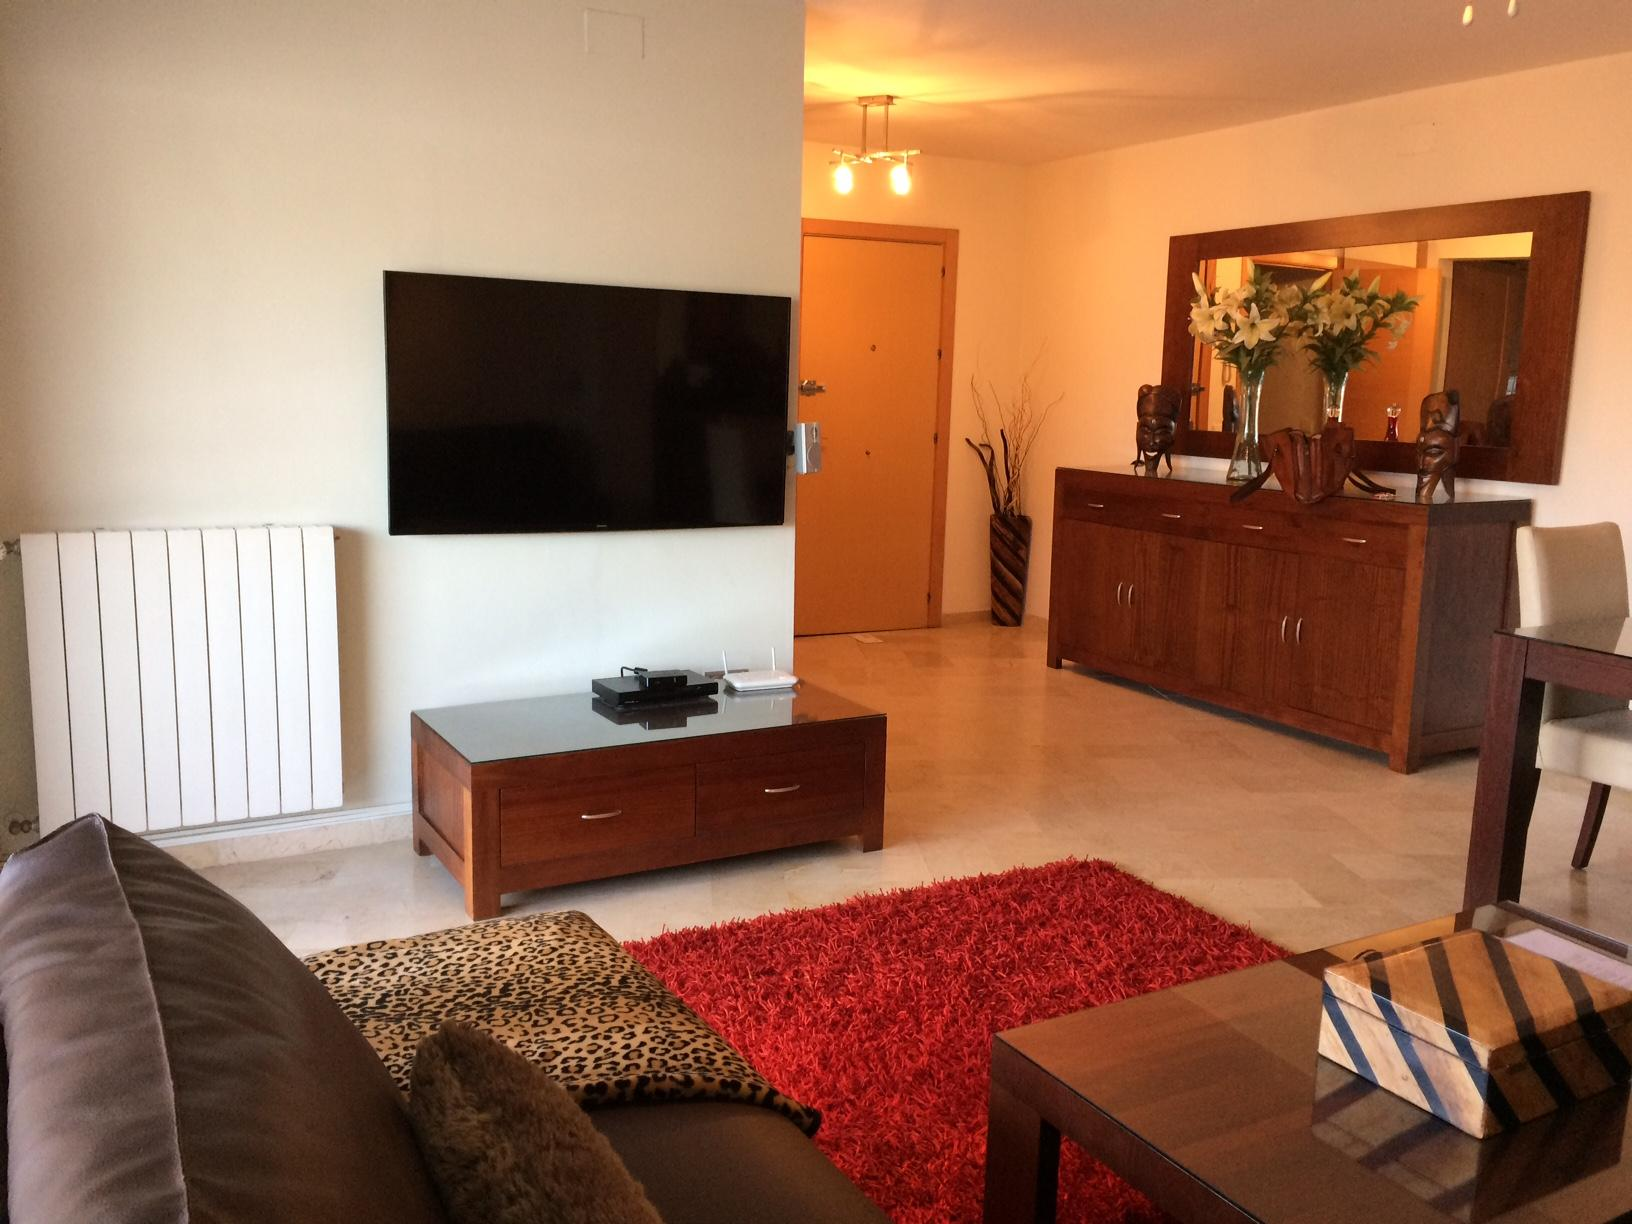 Parque Marbella II, Apartment available for Holiday Rental in Parque Marbella, Marbella, Spain